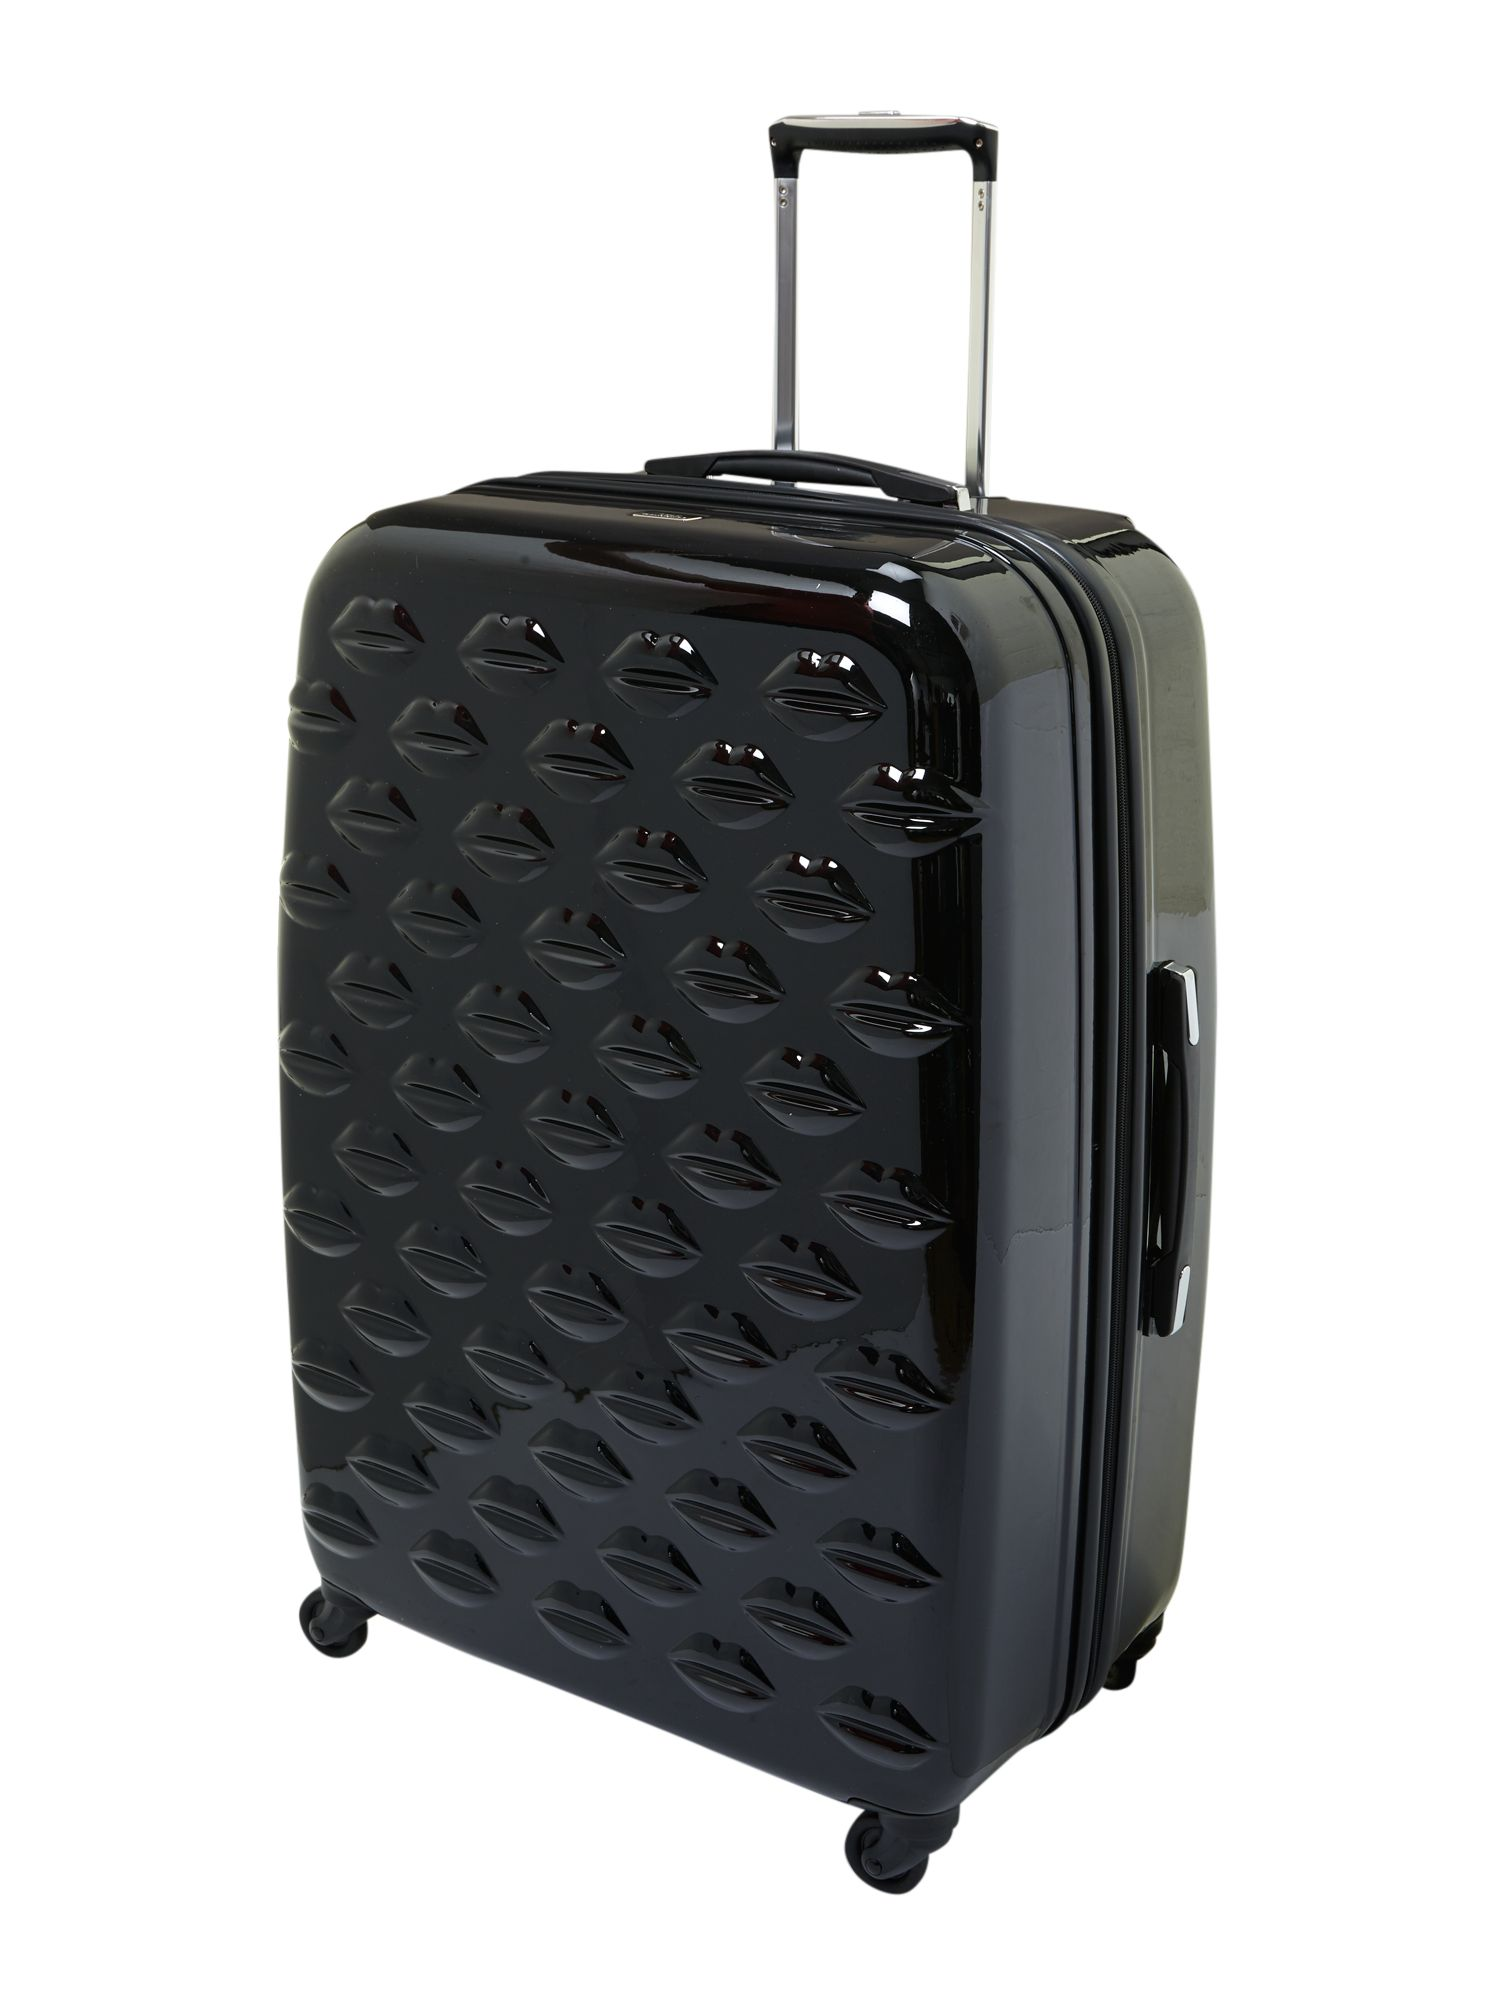 Lulu Lips black 71cm 4 wheel case light weight